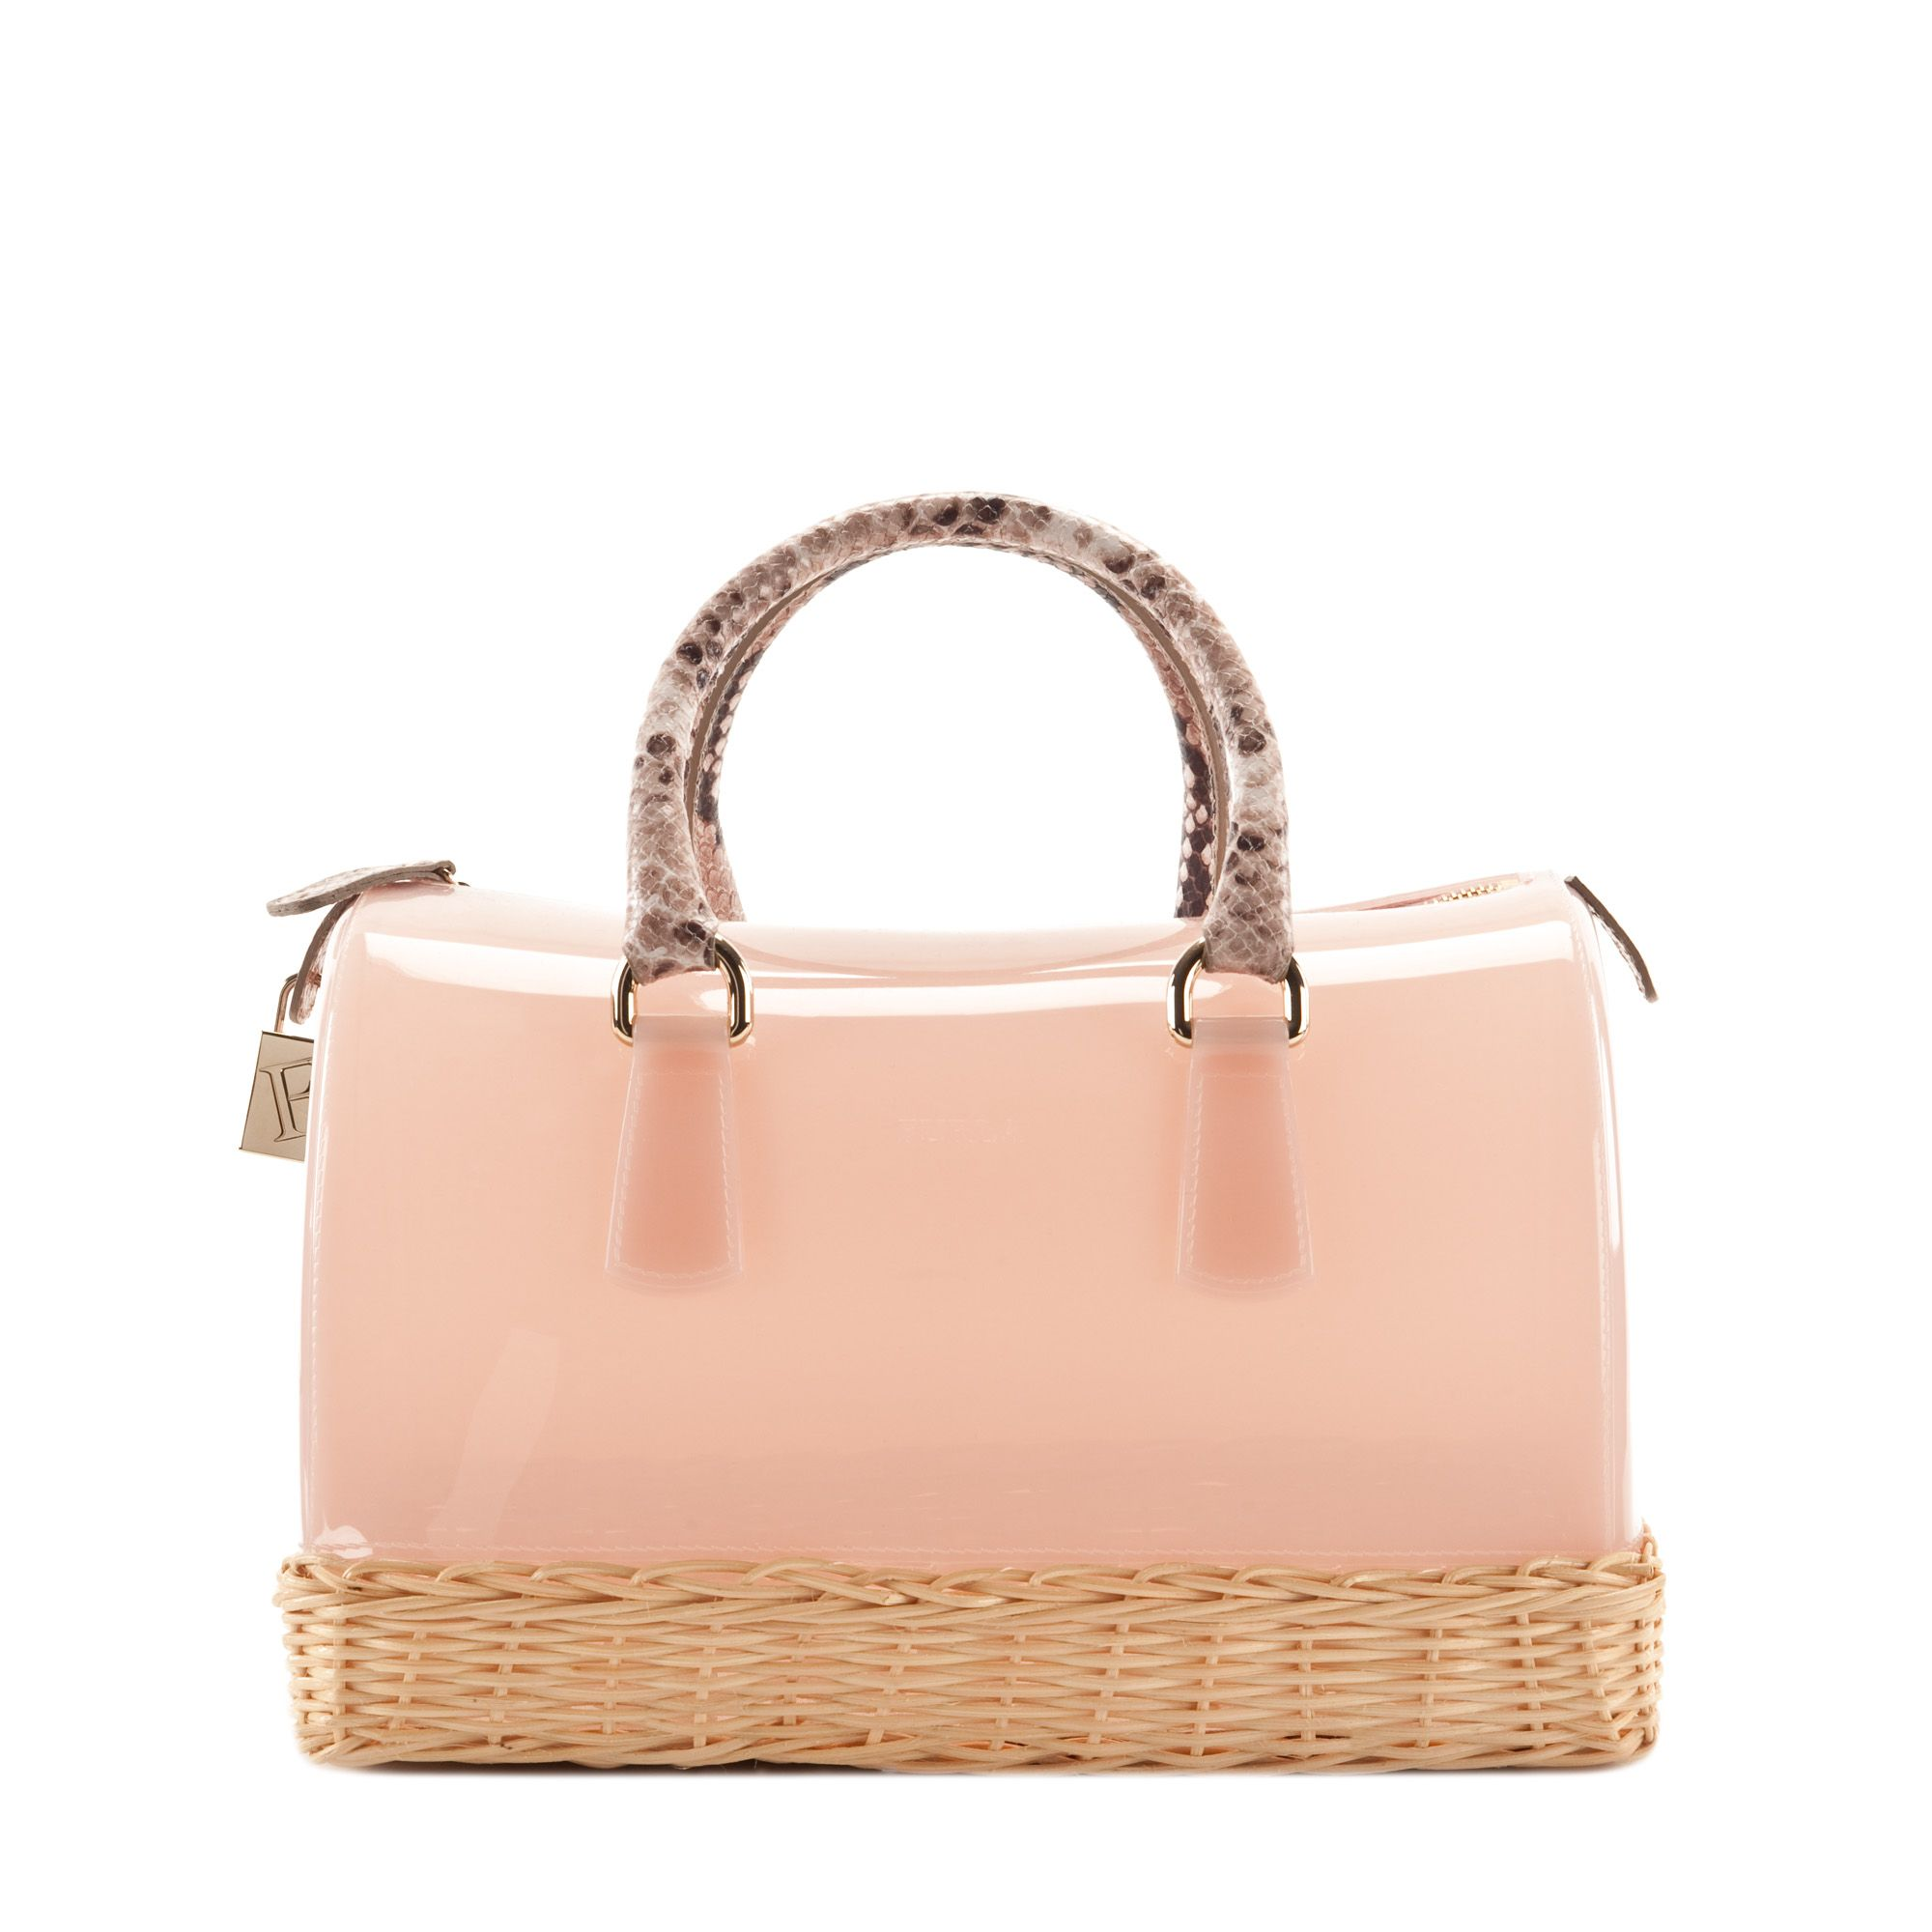 CANDY Satchel Rose, Natural shades Bags - Furla - United States